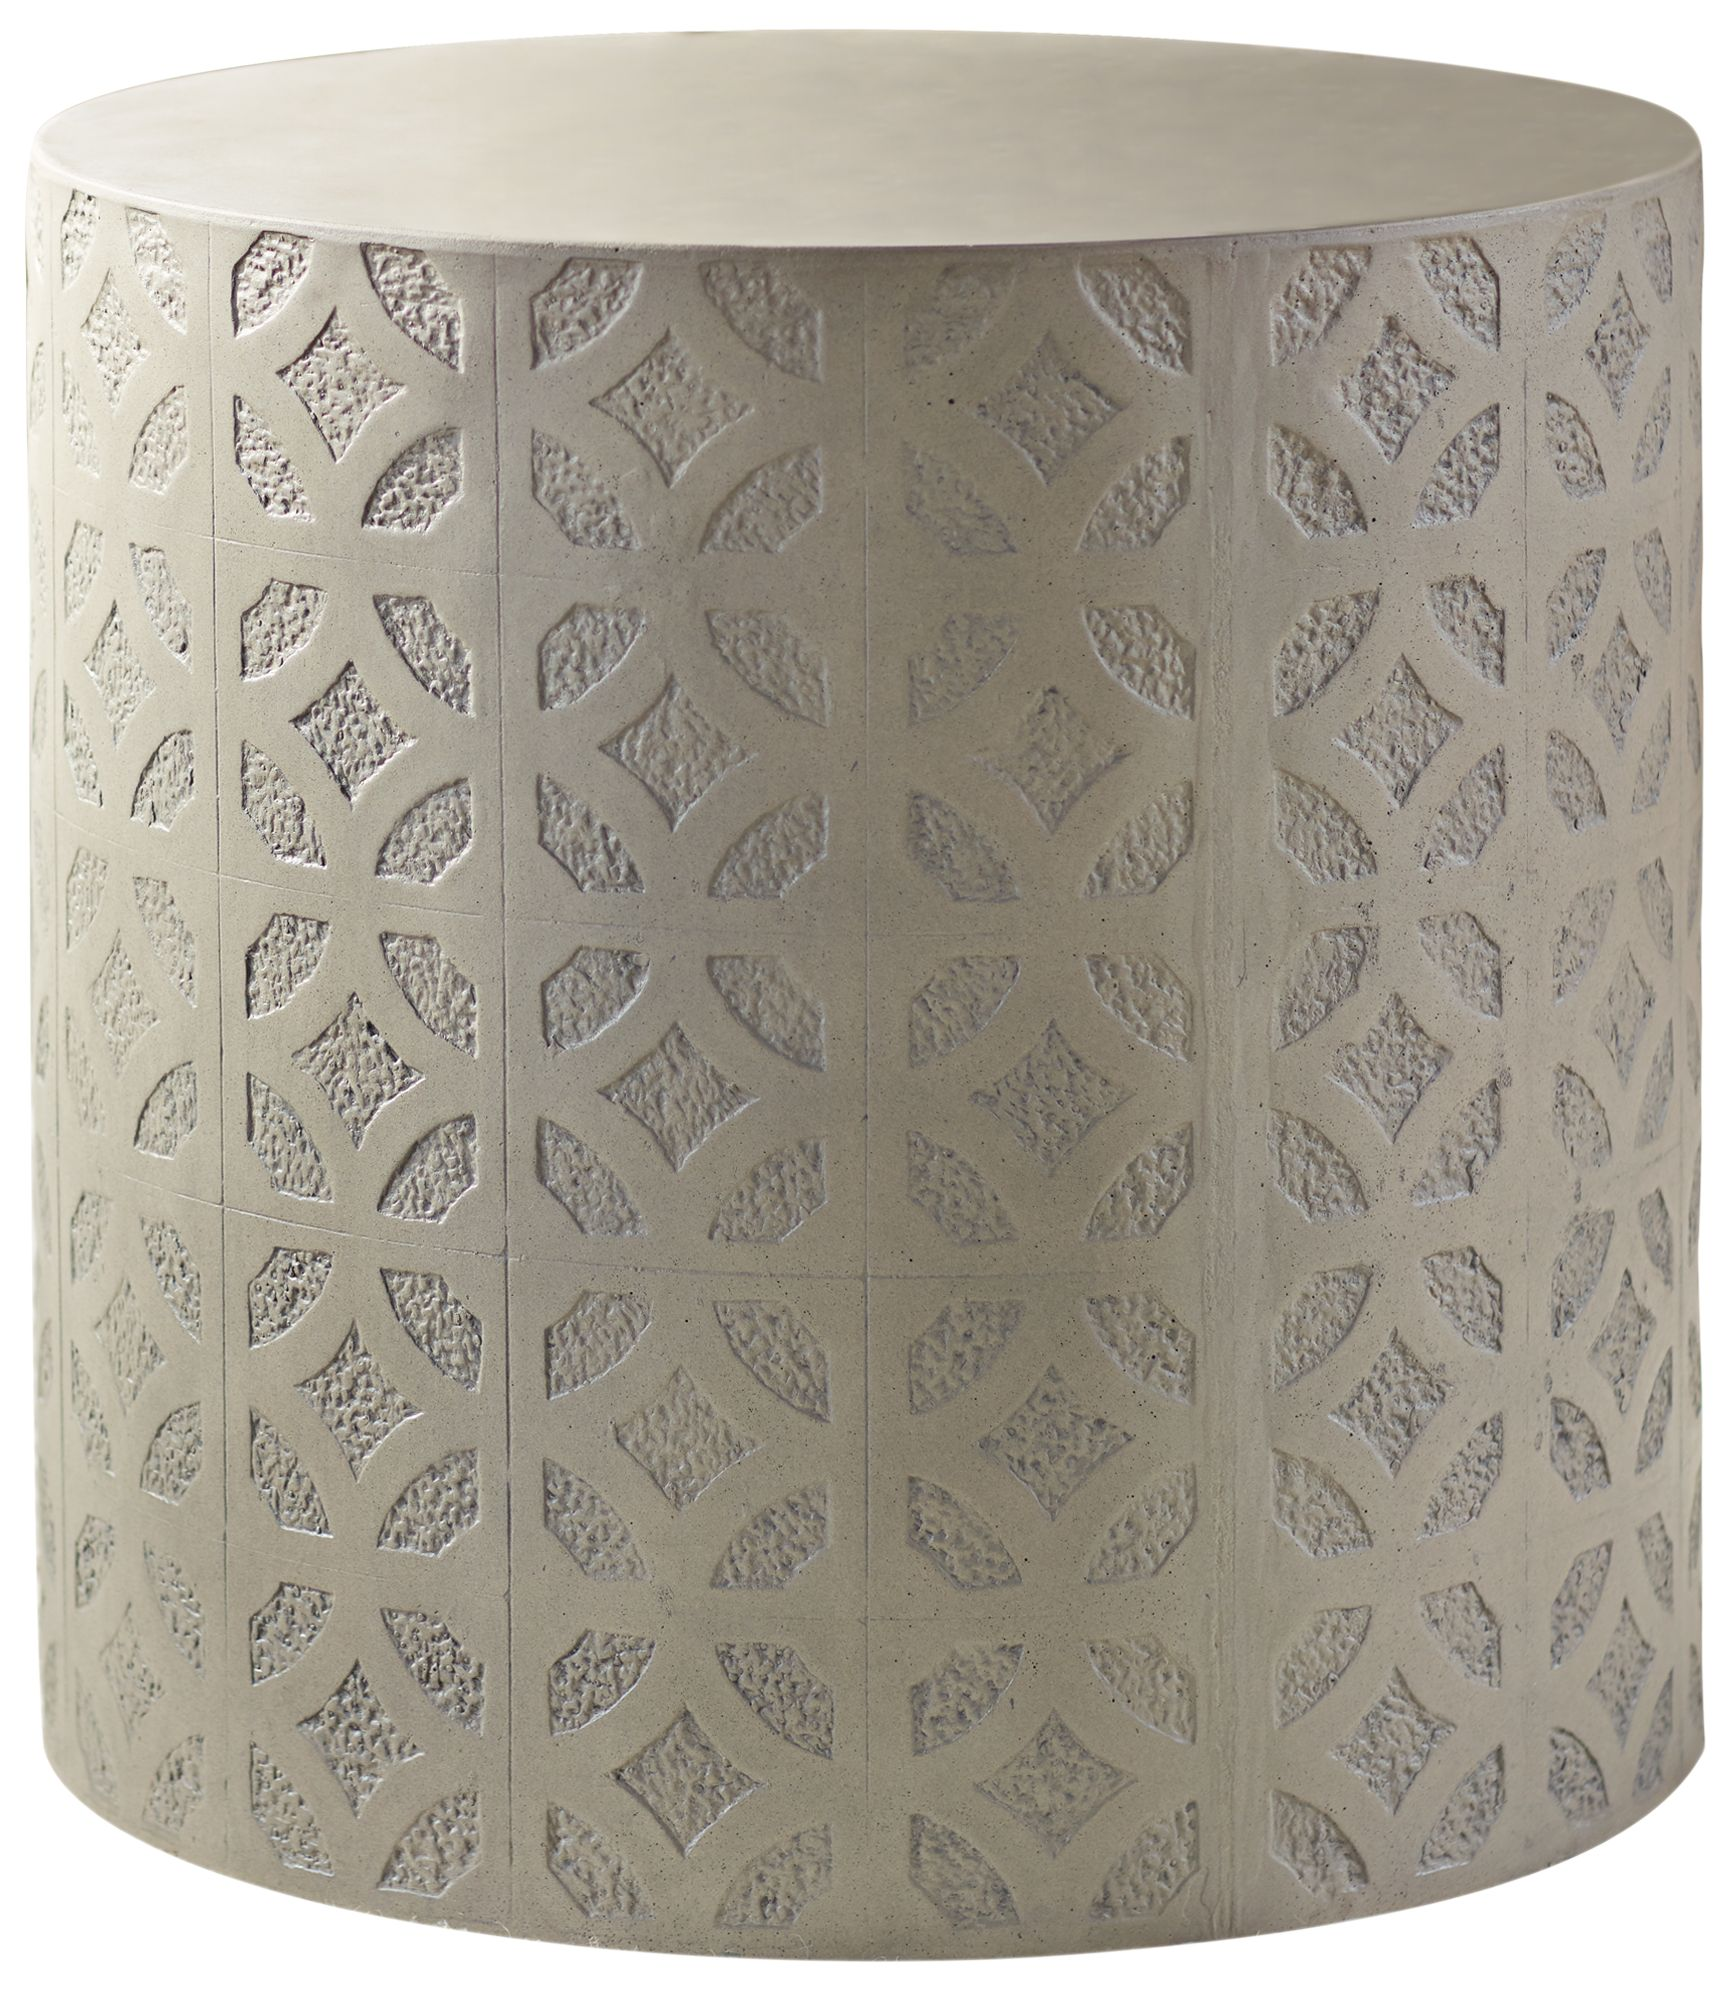 Imani Cement Drum Natural Concrete Indoor Outdoor Side Table